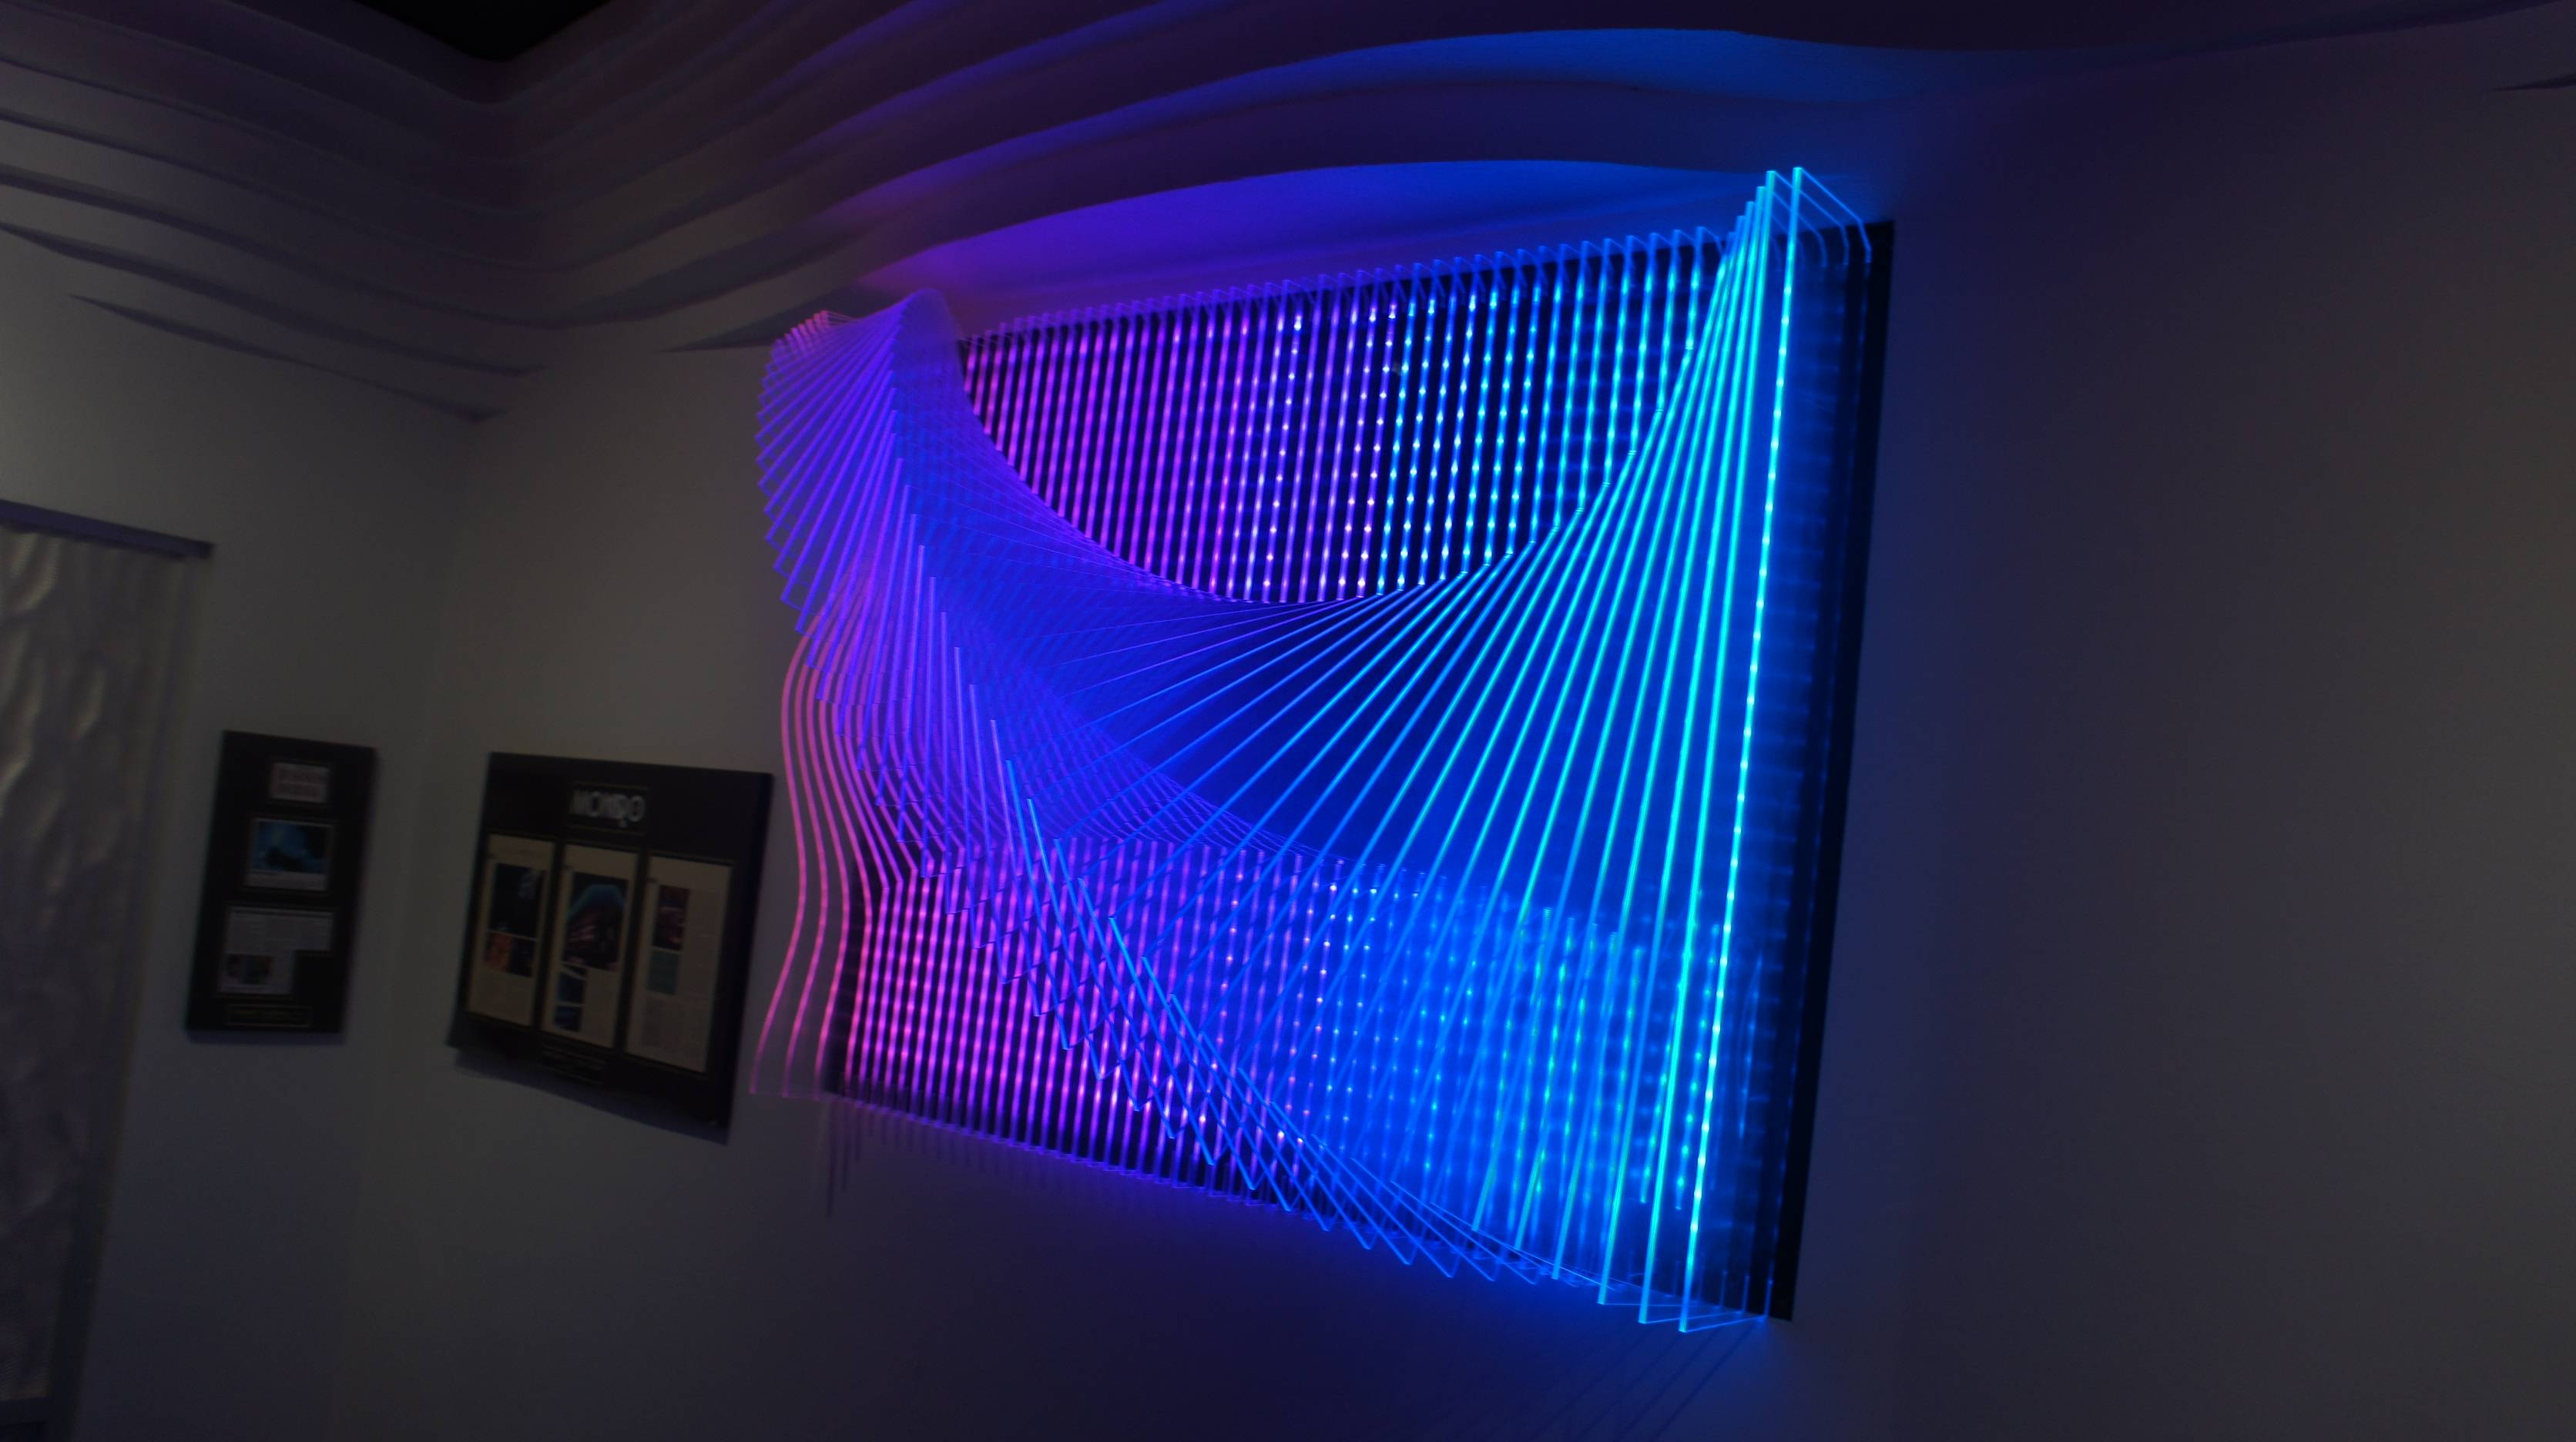 Wall Art With Led Lights – The Art Of The Future | Warisan Lighting Intended For Most Current 3D Wall Art With Lights (View 19 of 20)